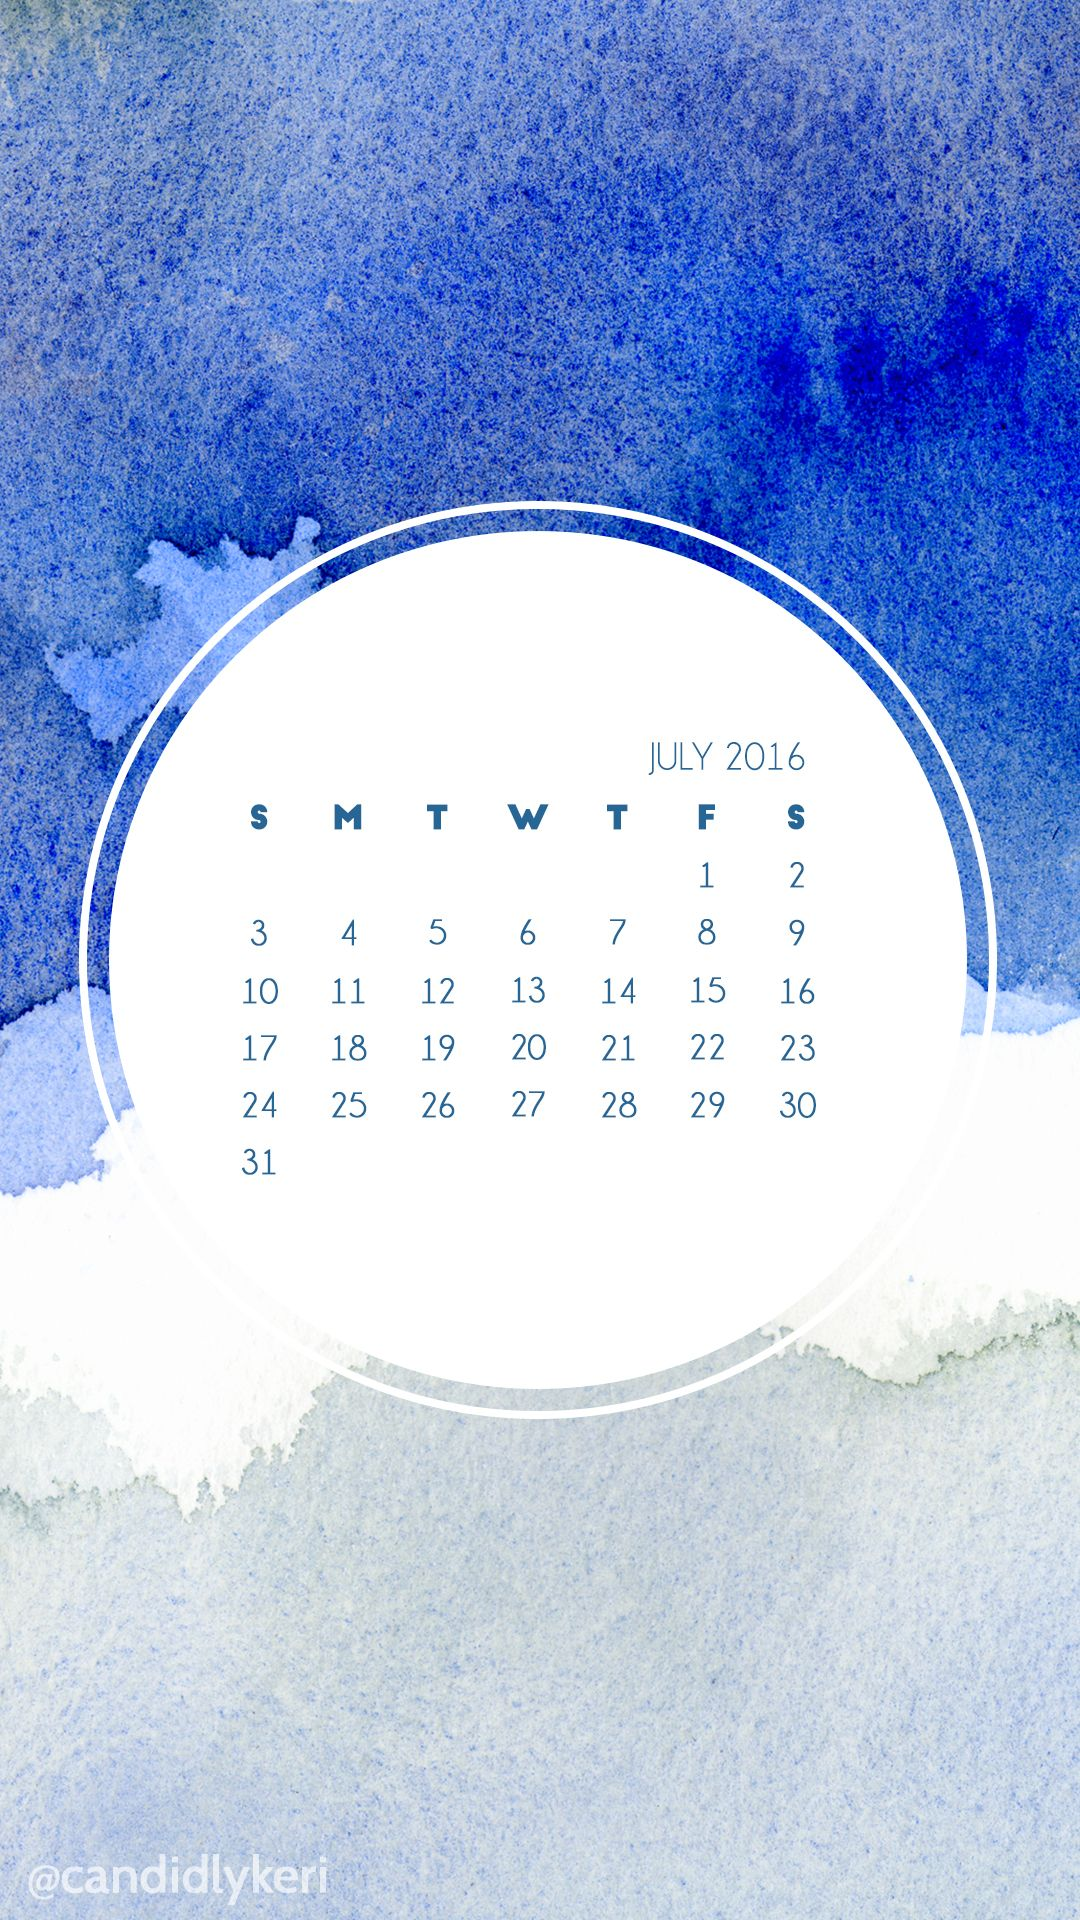 dark blue and grey watercolor july 2016 calendar wallpaper free download for iphone android or desktop